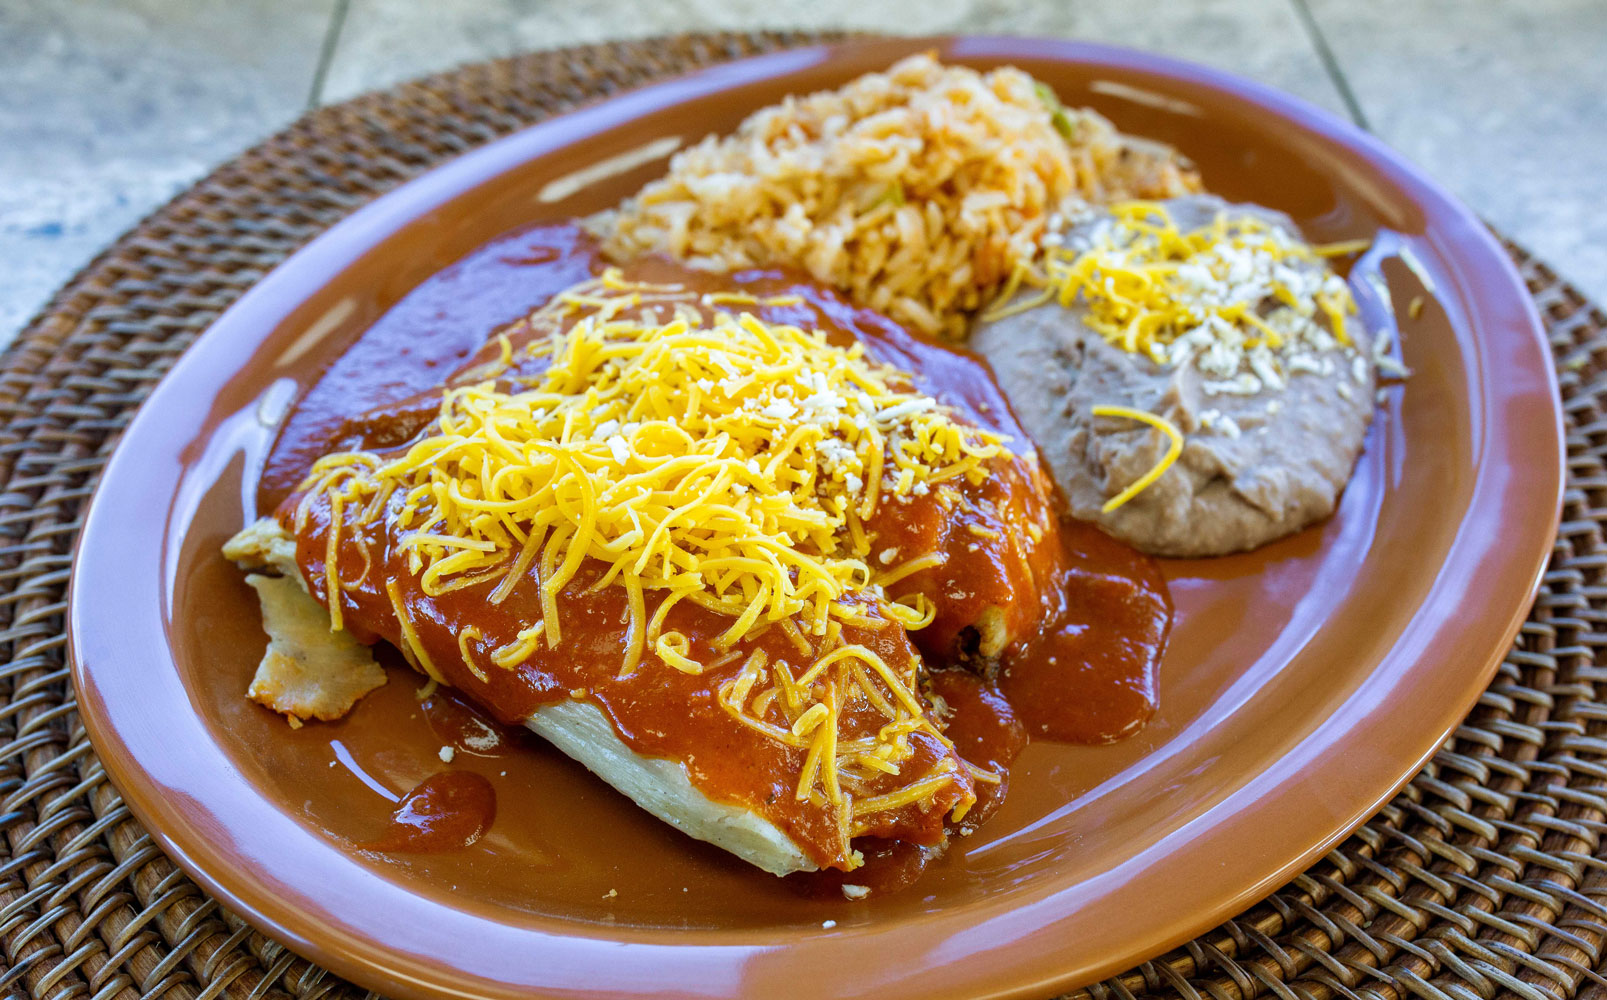 The two tamale combo